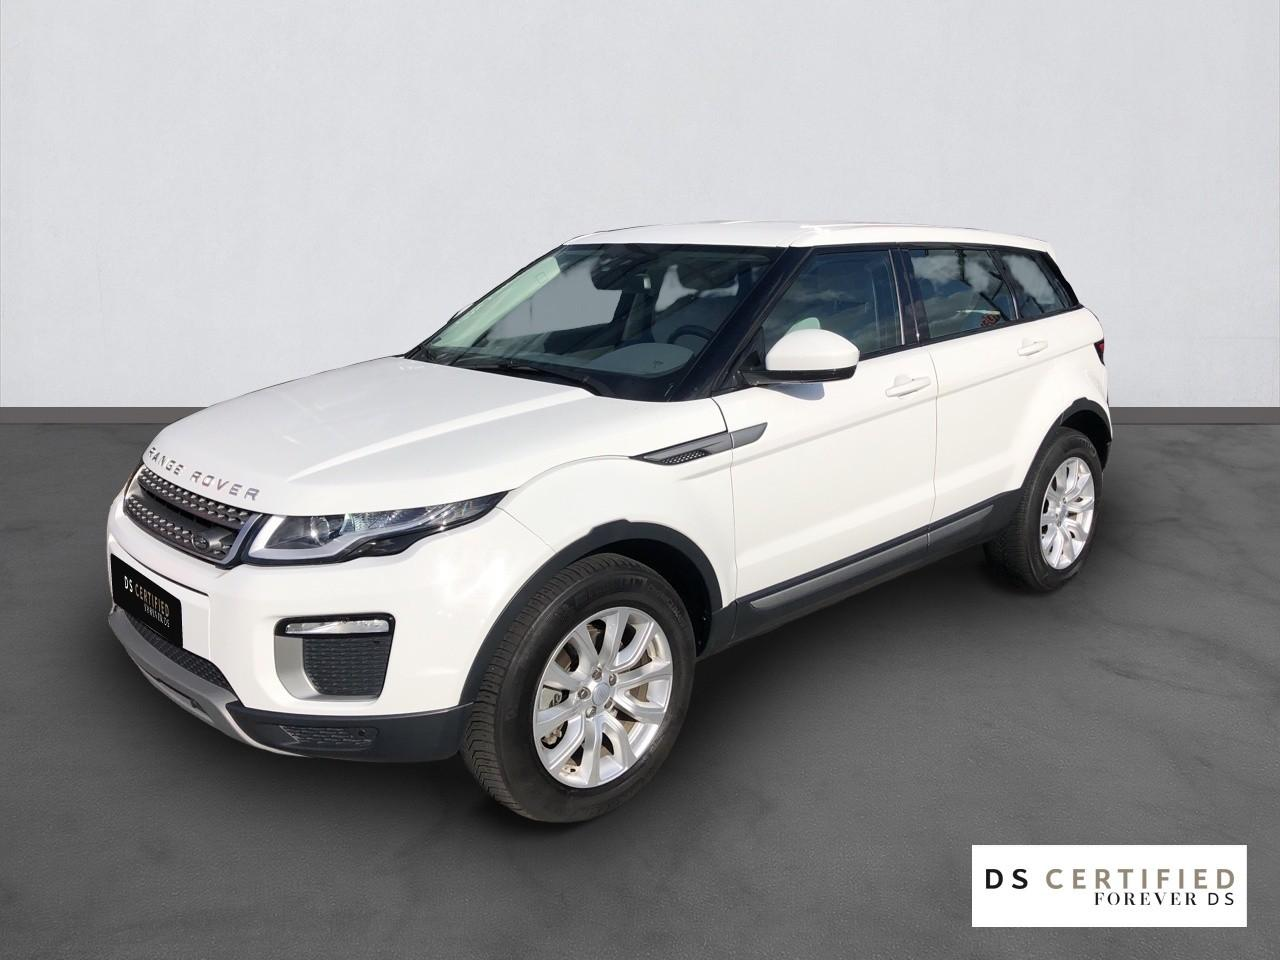 Land rover Range Rover Evoque 2.0 TD4 150 SE Dynamic BVA Mark III